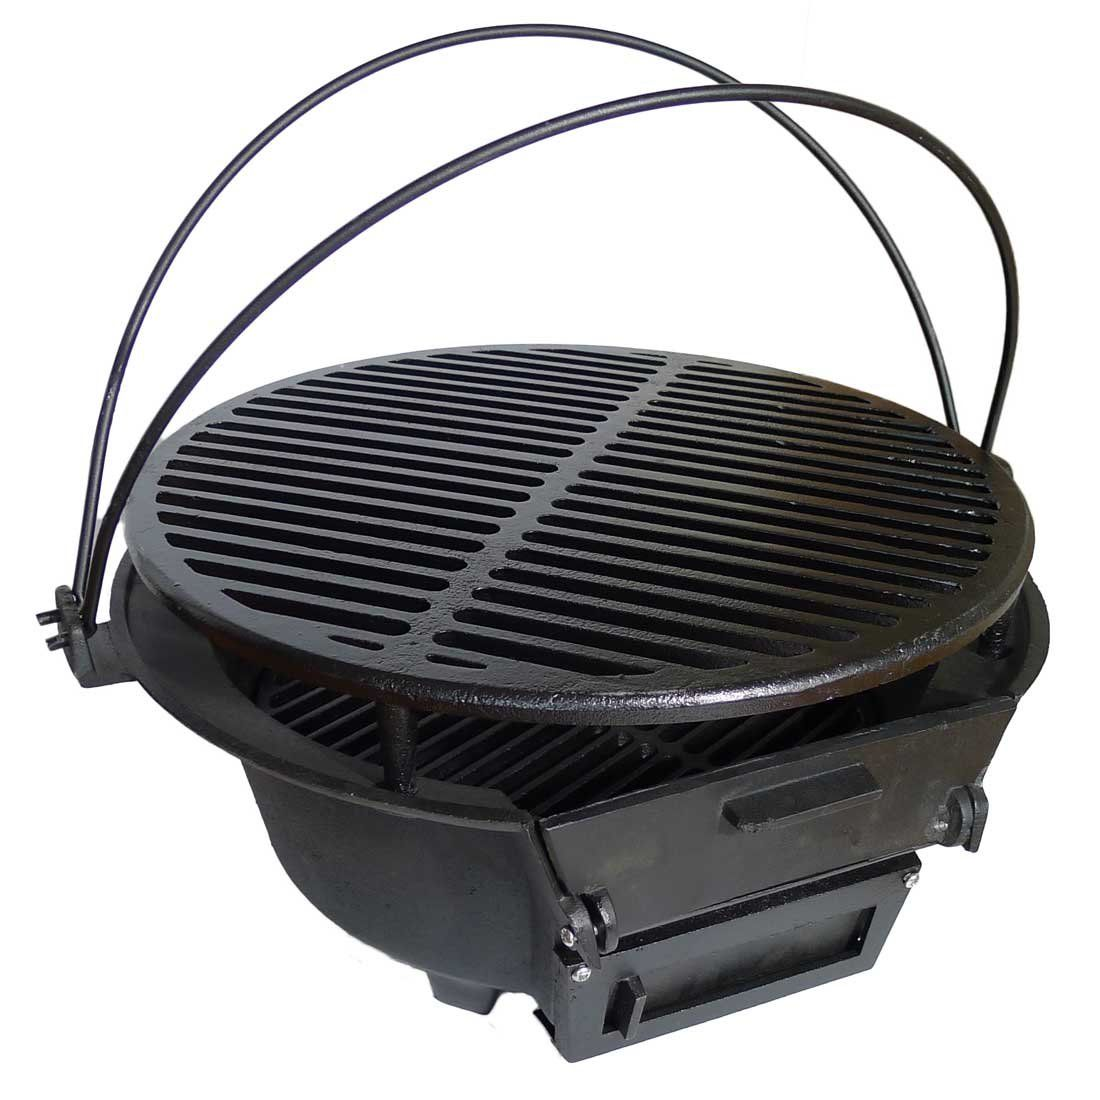 Spiceberry Home Cast Iron 16 Inch Round Hibachi Barbecue Grill Hibachi Grill Bedroom Ideas For Couples Modern Grilling